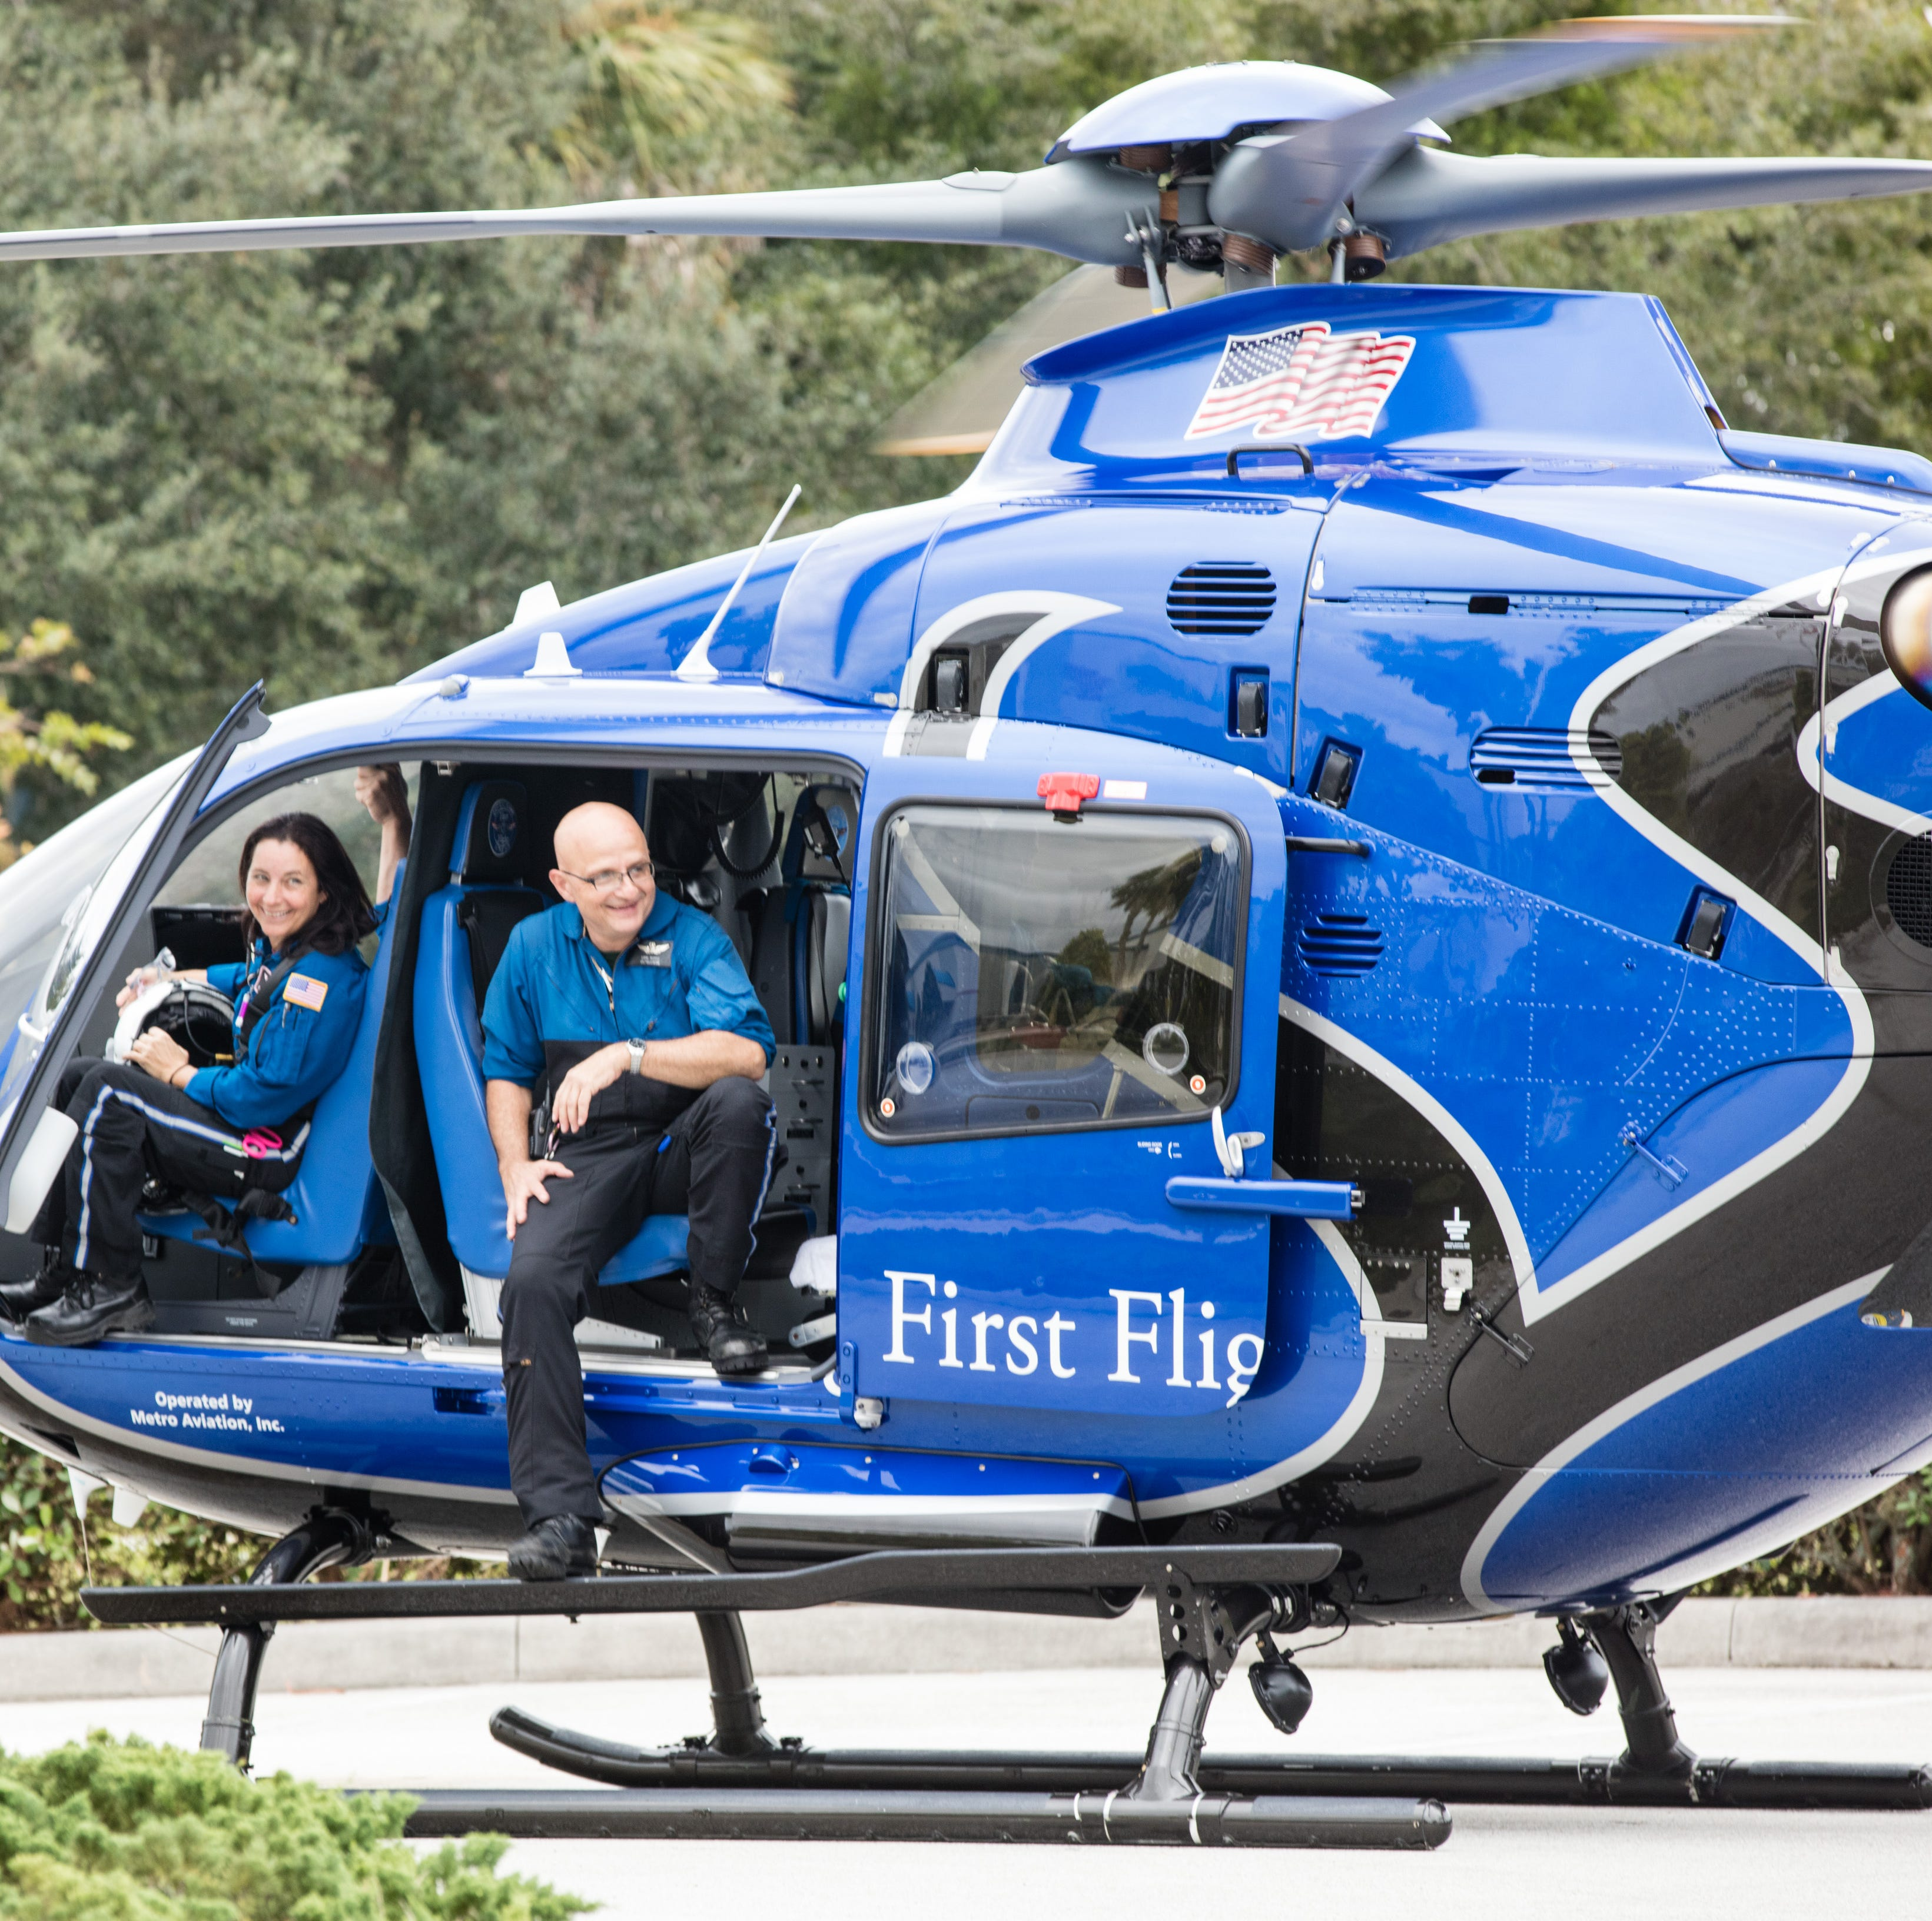 First Flight emergency helicopter service turns 30